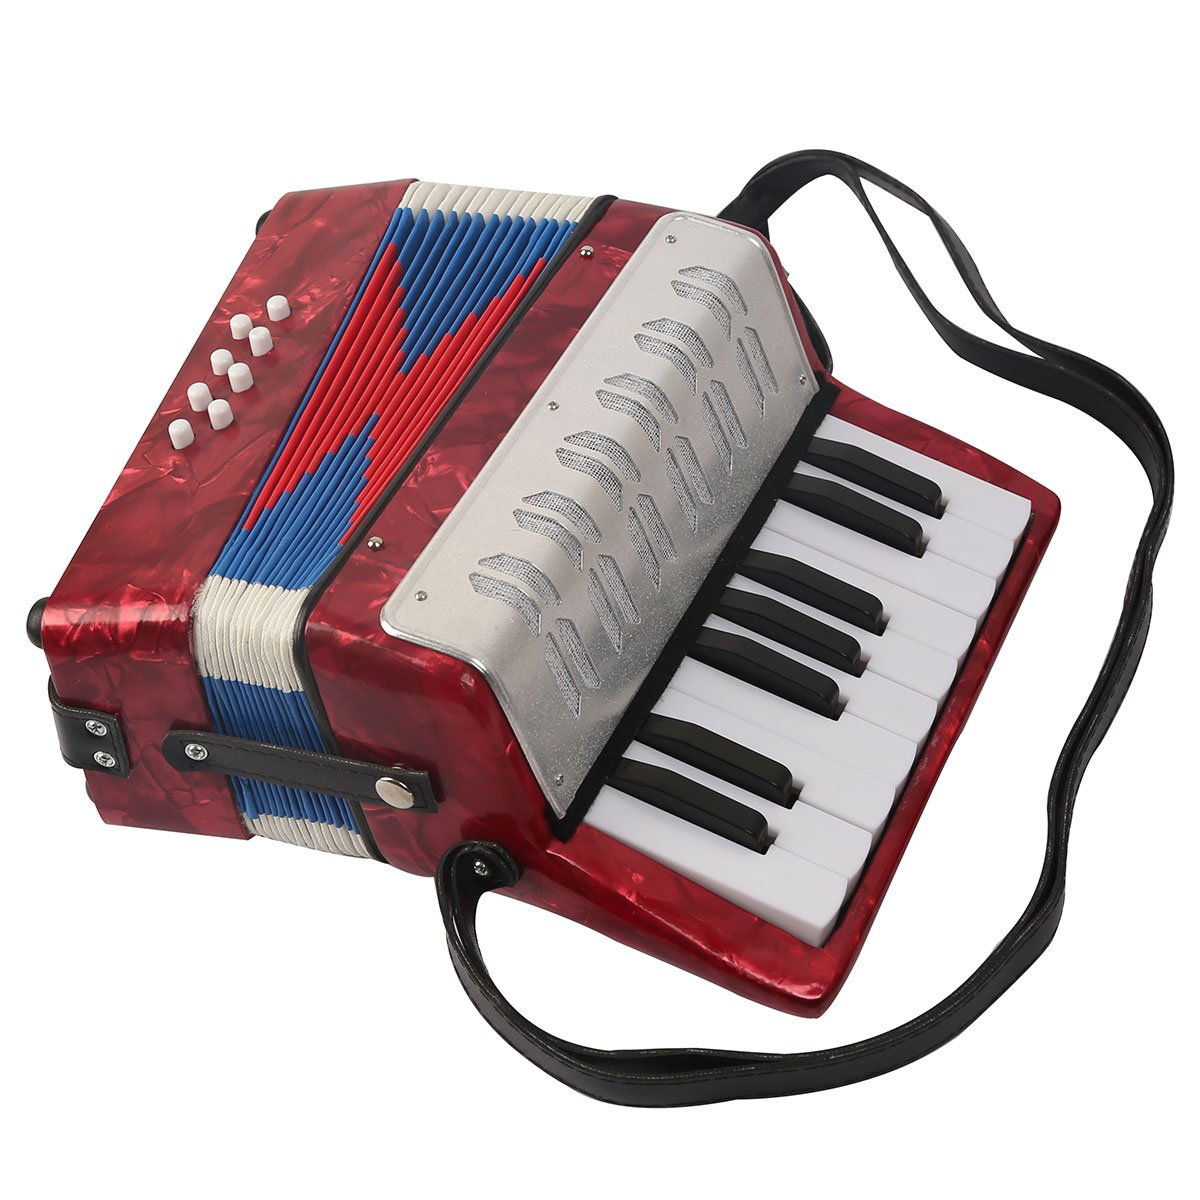 Blueseason M821/M824 17 Keys 8 Bass Children Accordion Children Enlightenment Puzzle Musical Instruments Toys Birthday Toys, Red-M824